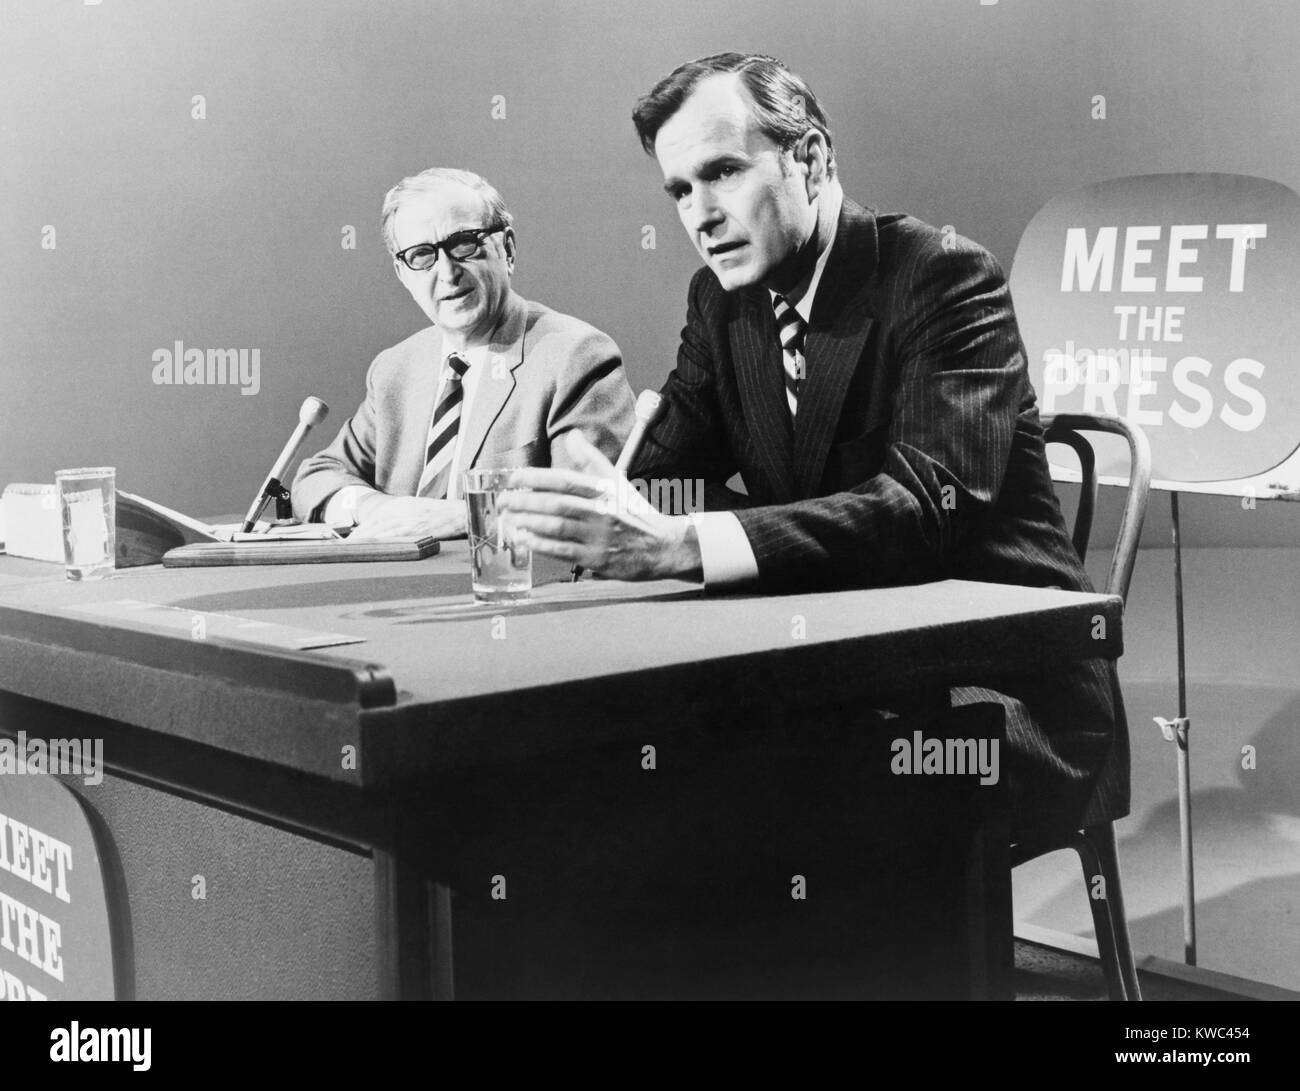 George H. W. Bush on 'Meet the Press' TV program in 1971. The future U.S. President was then the Ambassador - Stock Image